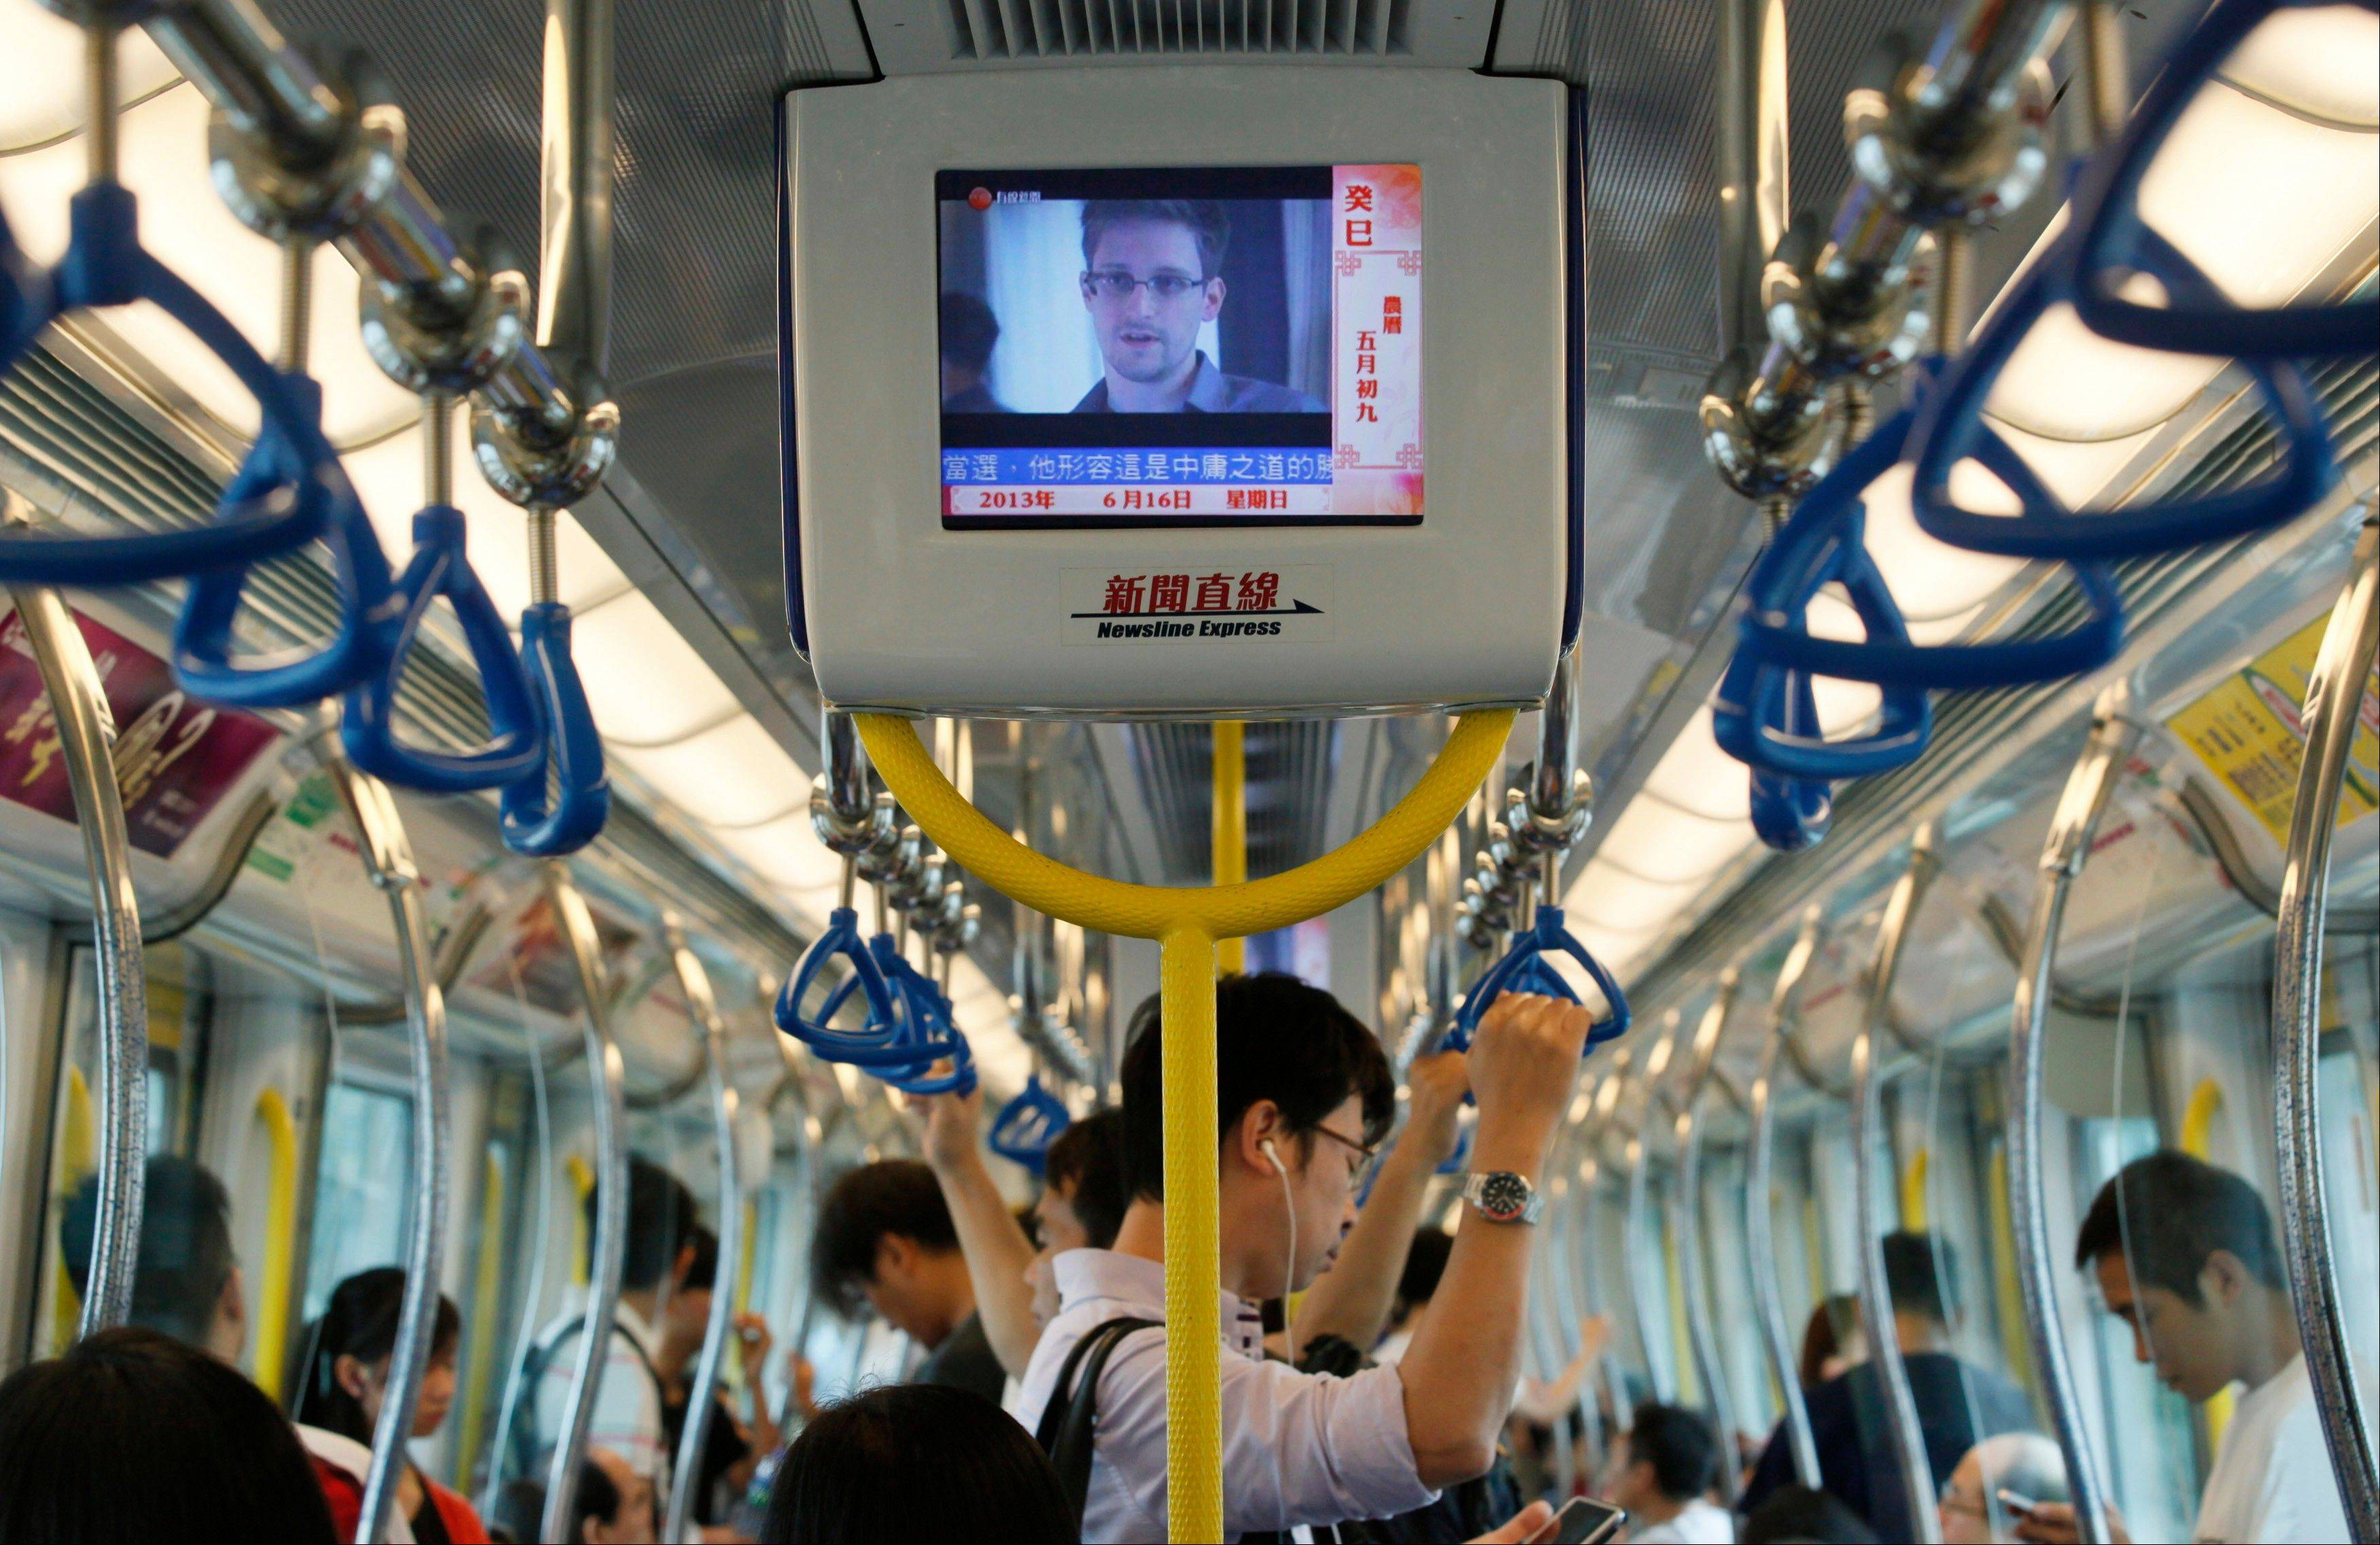 In this June 16, 2013 file photo a television screen shjows the news of Edward Snowden, a former CIA employee who leaked top-secret documents about sweeping U.S. surveillance programs, in the underground train in Hong Kong.